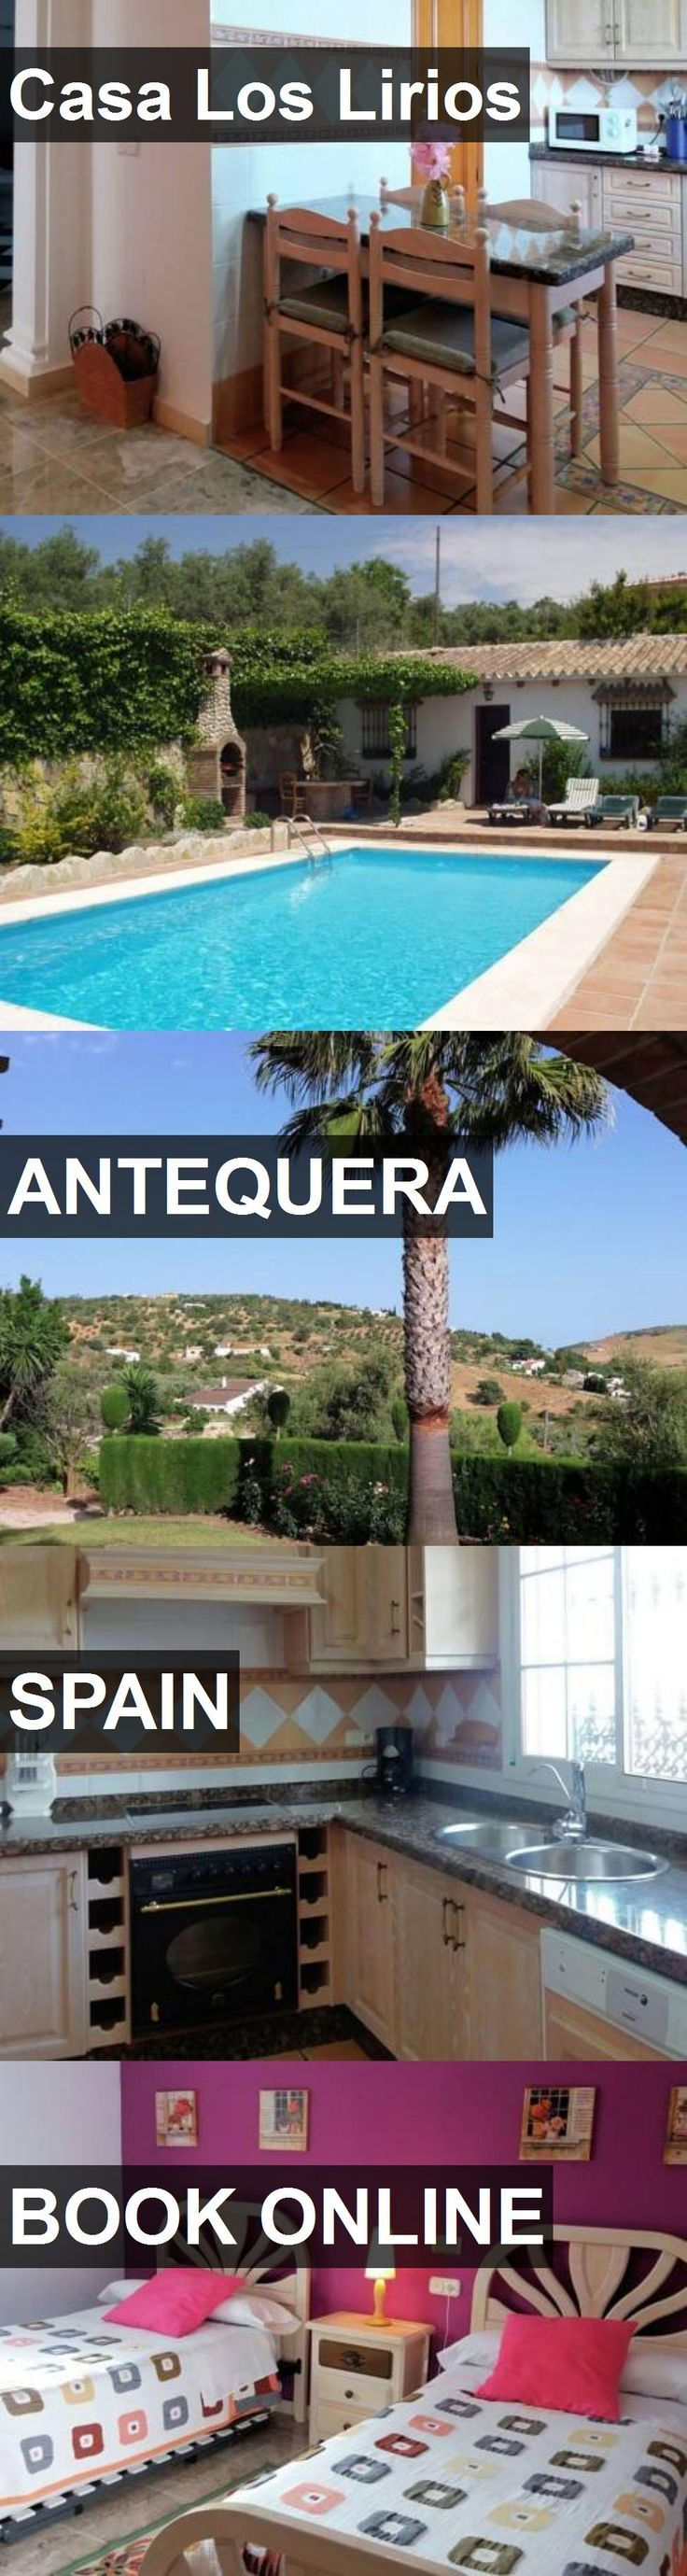 Hotel Casa Los Lirios in Antequera, Spain. For more information, photos, reviews and best prices please follow the link. #Spain #Antequera #travel #vacation #hotel